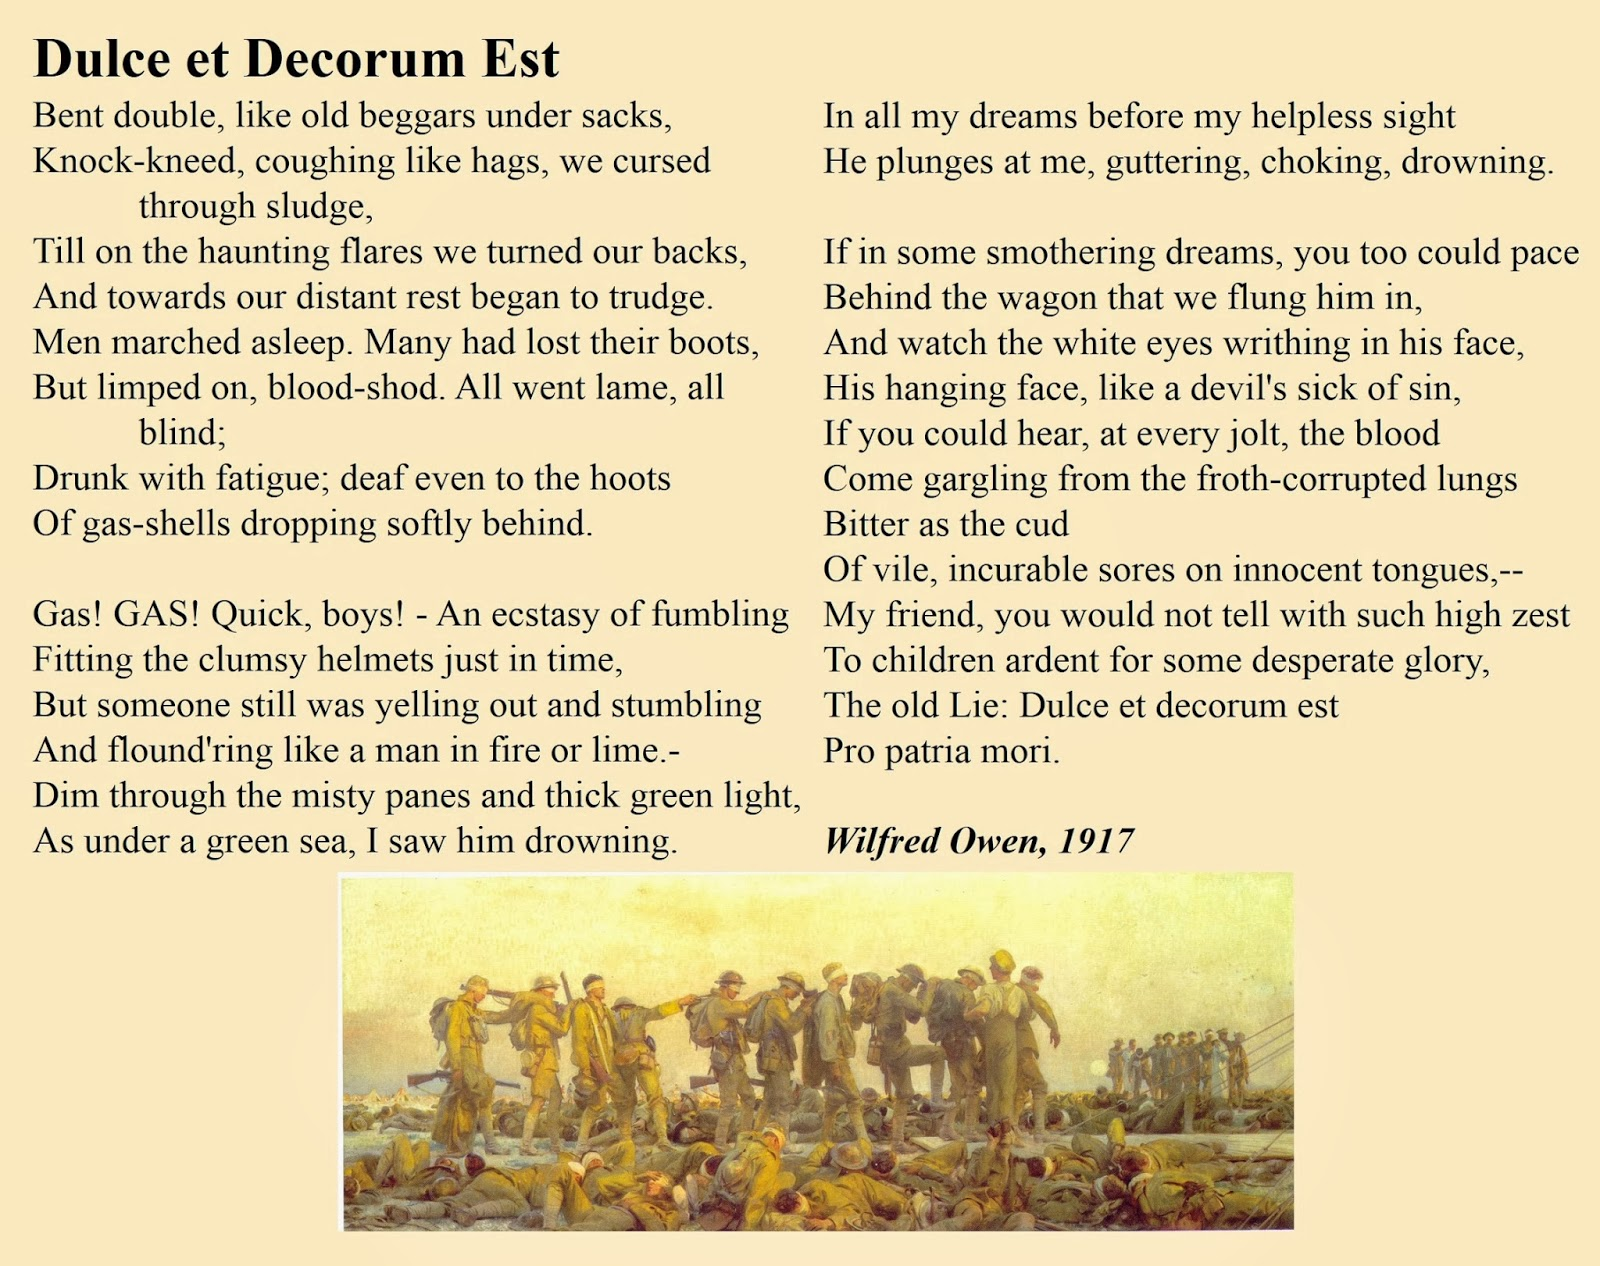 essay on dulce et decorum Keywords: dulce et decorum est wilfred owen wilfred owen analysis dulce et decorum est is a famous anti-war poet written by wilfred owen in 1917, during the wwi it portrays war as a brutal and dehumanizing experience by utilizing a number of horrific, gruesome imageries effectively this poem is.